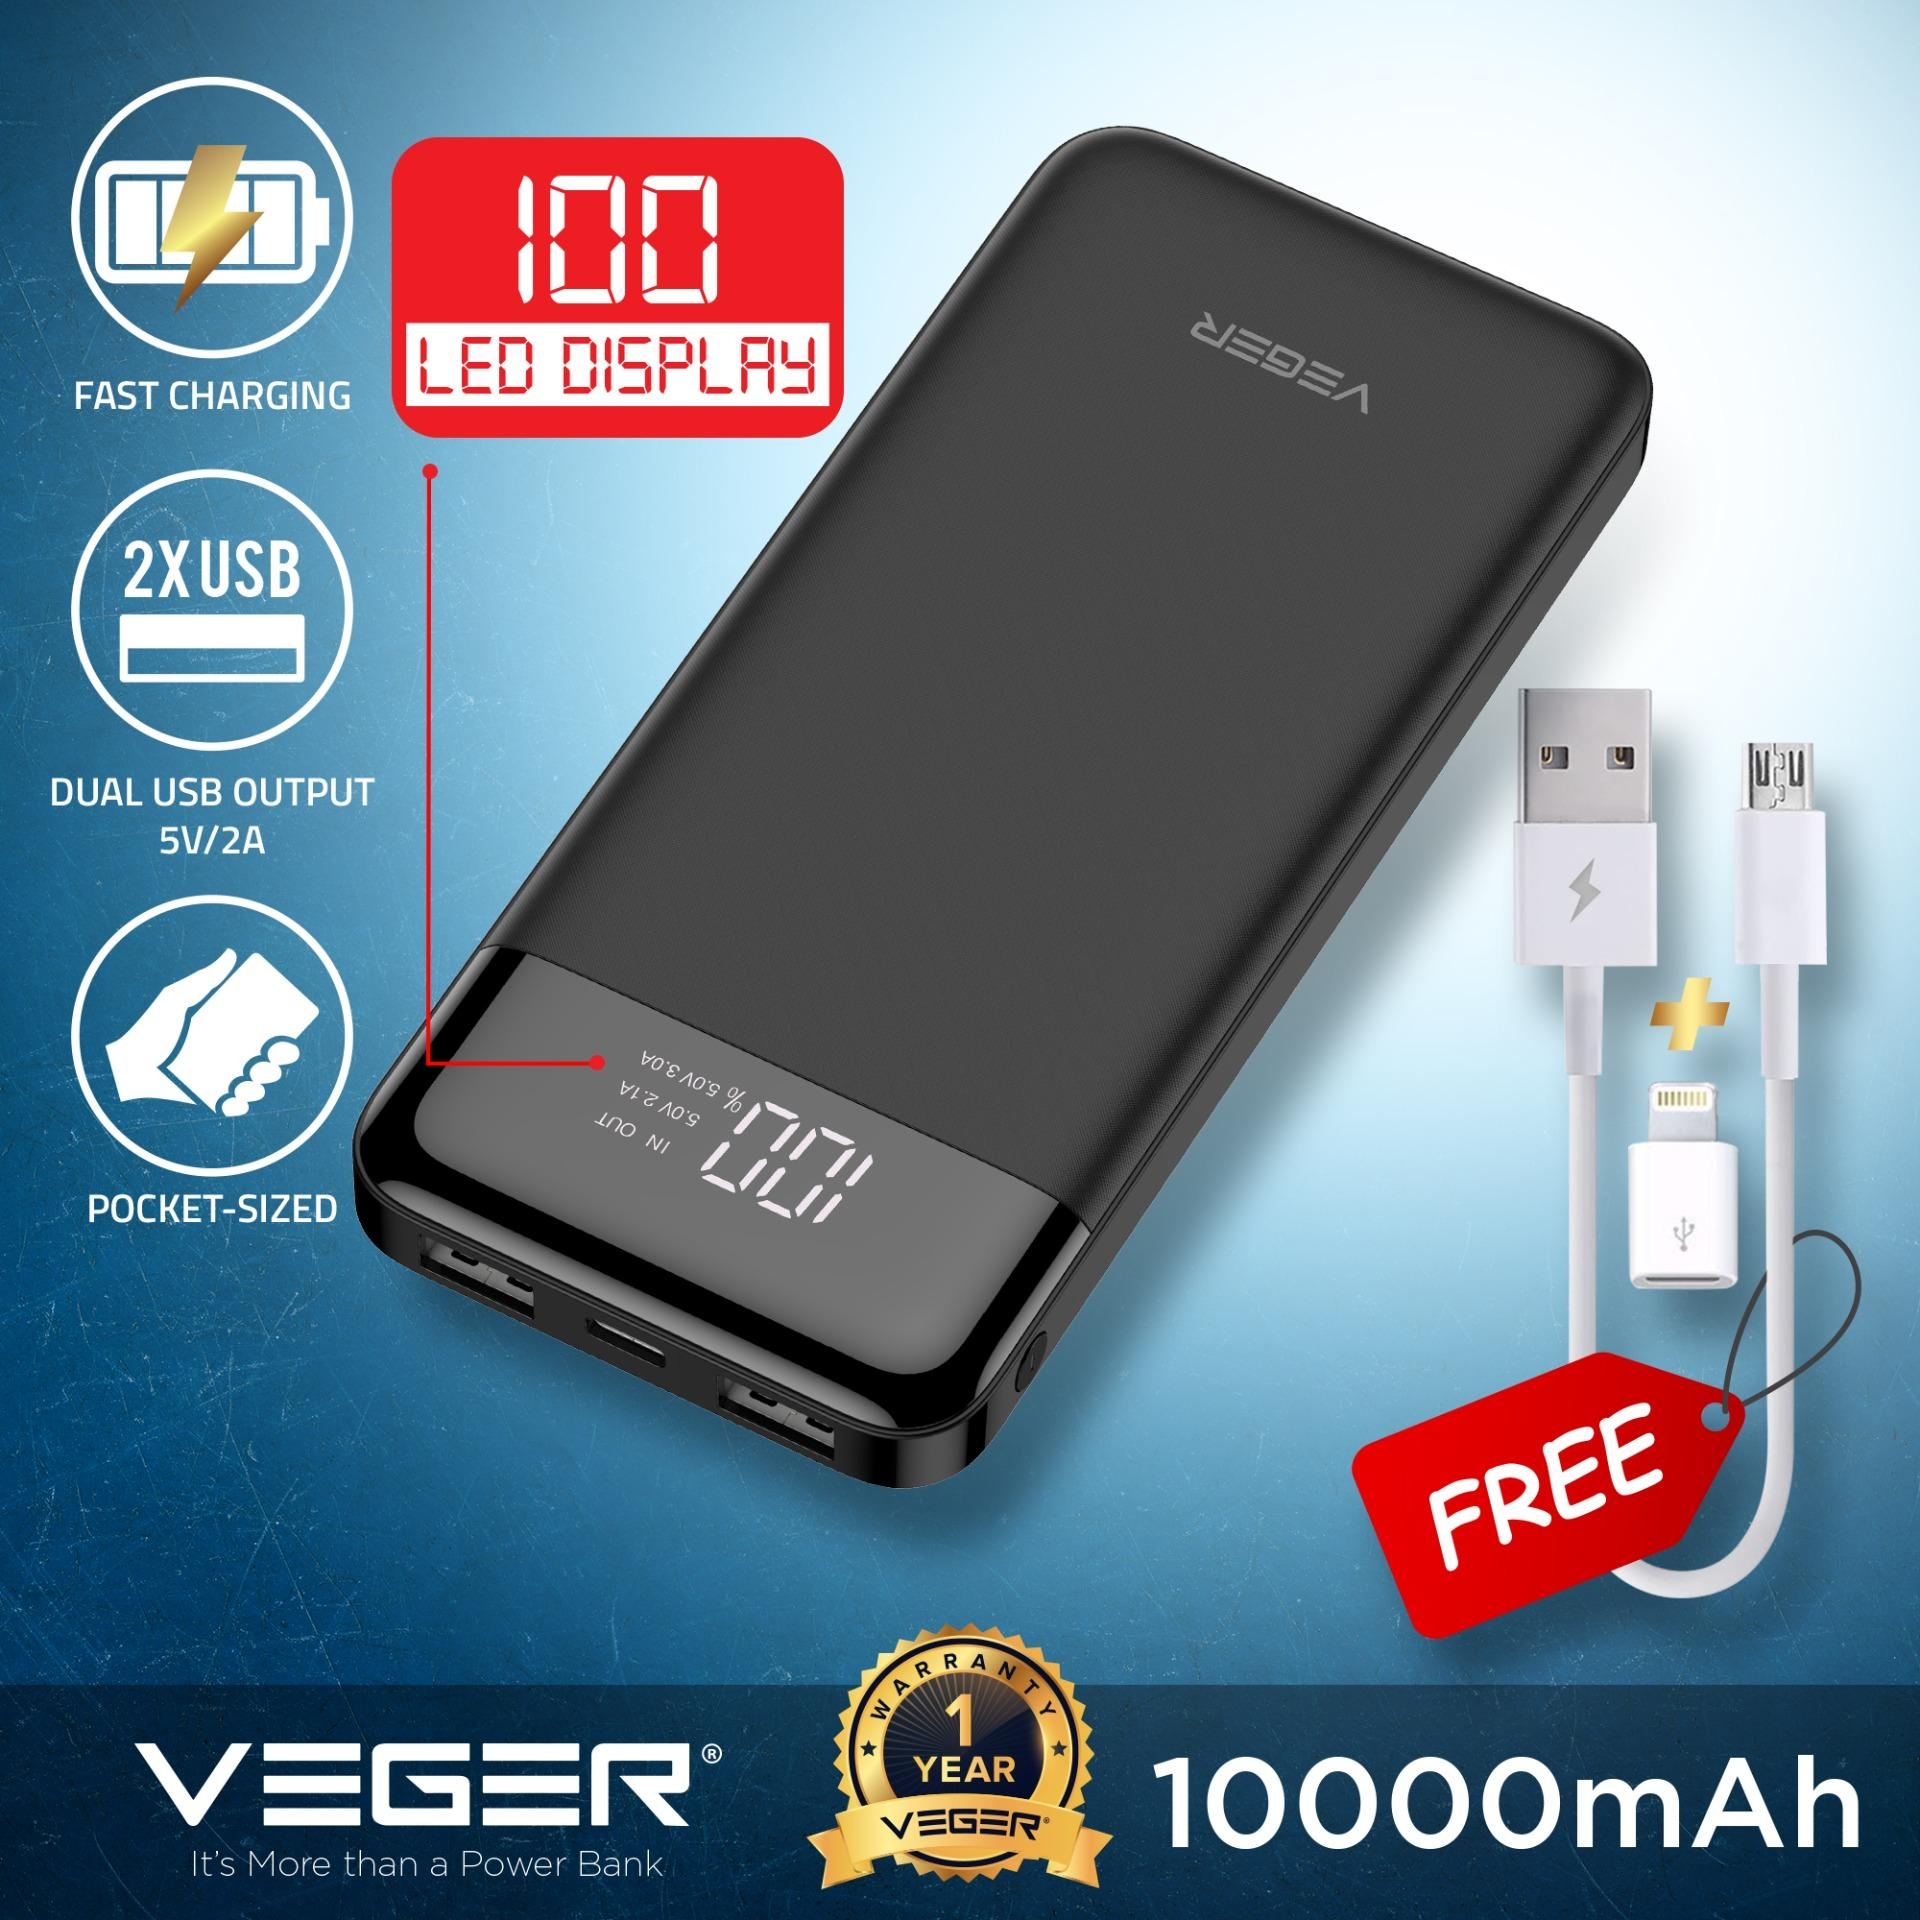 powerbank veger vp1056 10000mah slim compact fast charge power bank ismart dual 2 0 usb output with led display external battery compact portable  led bar display battery power indicator